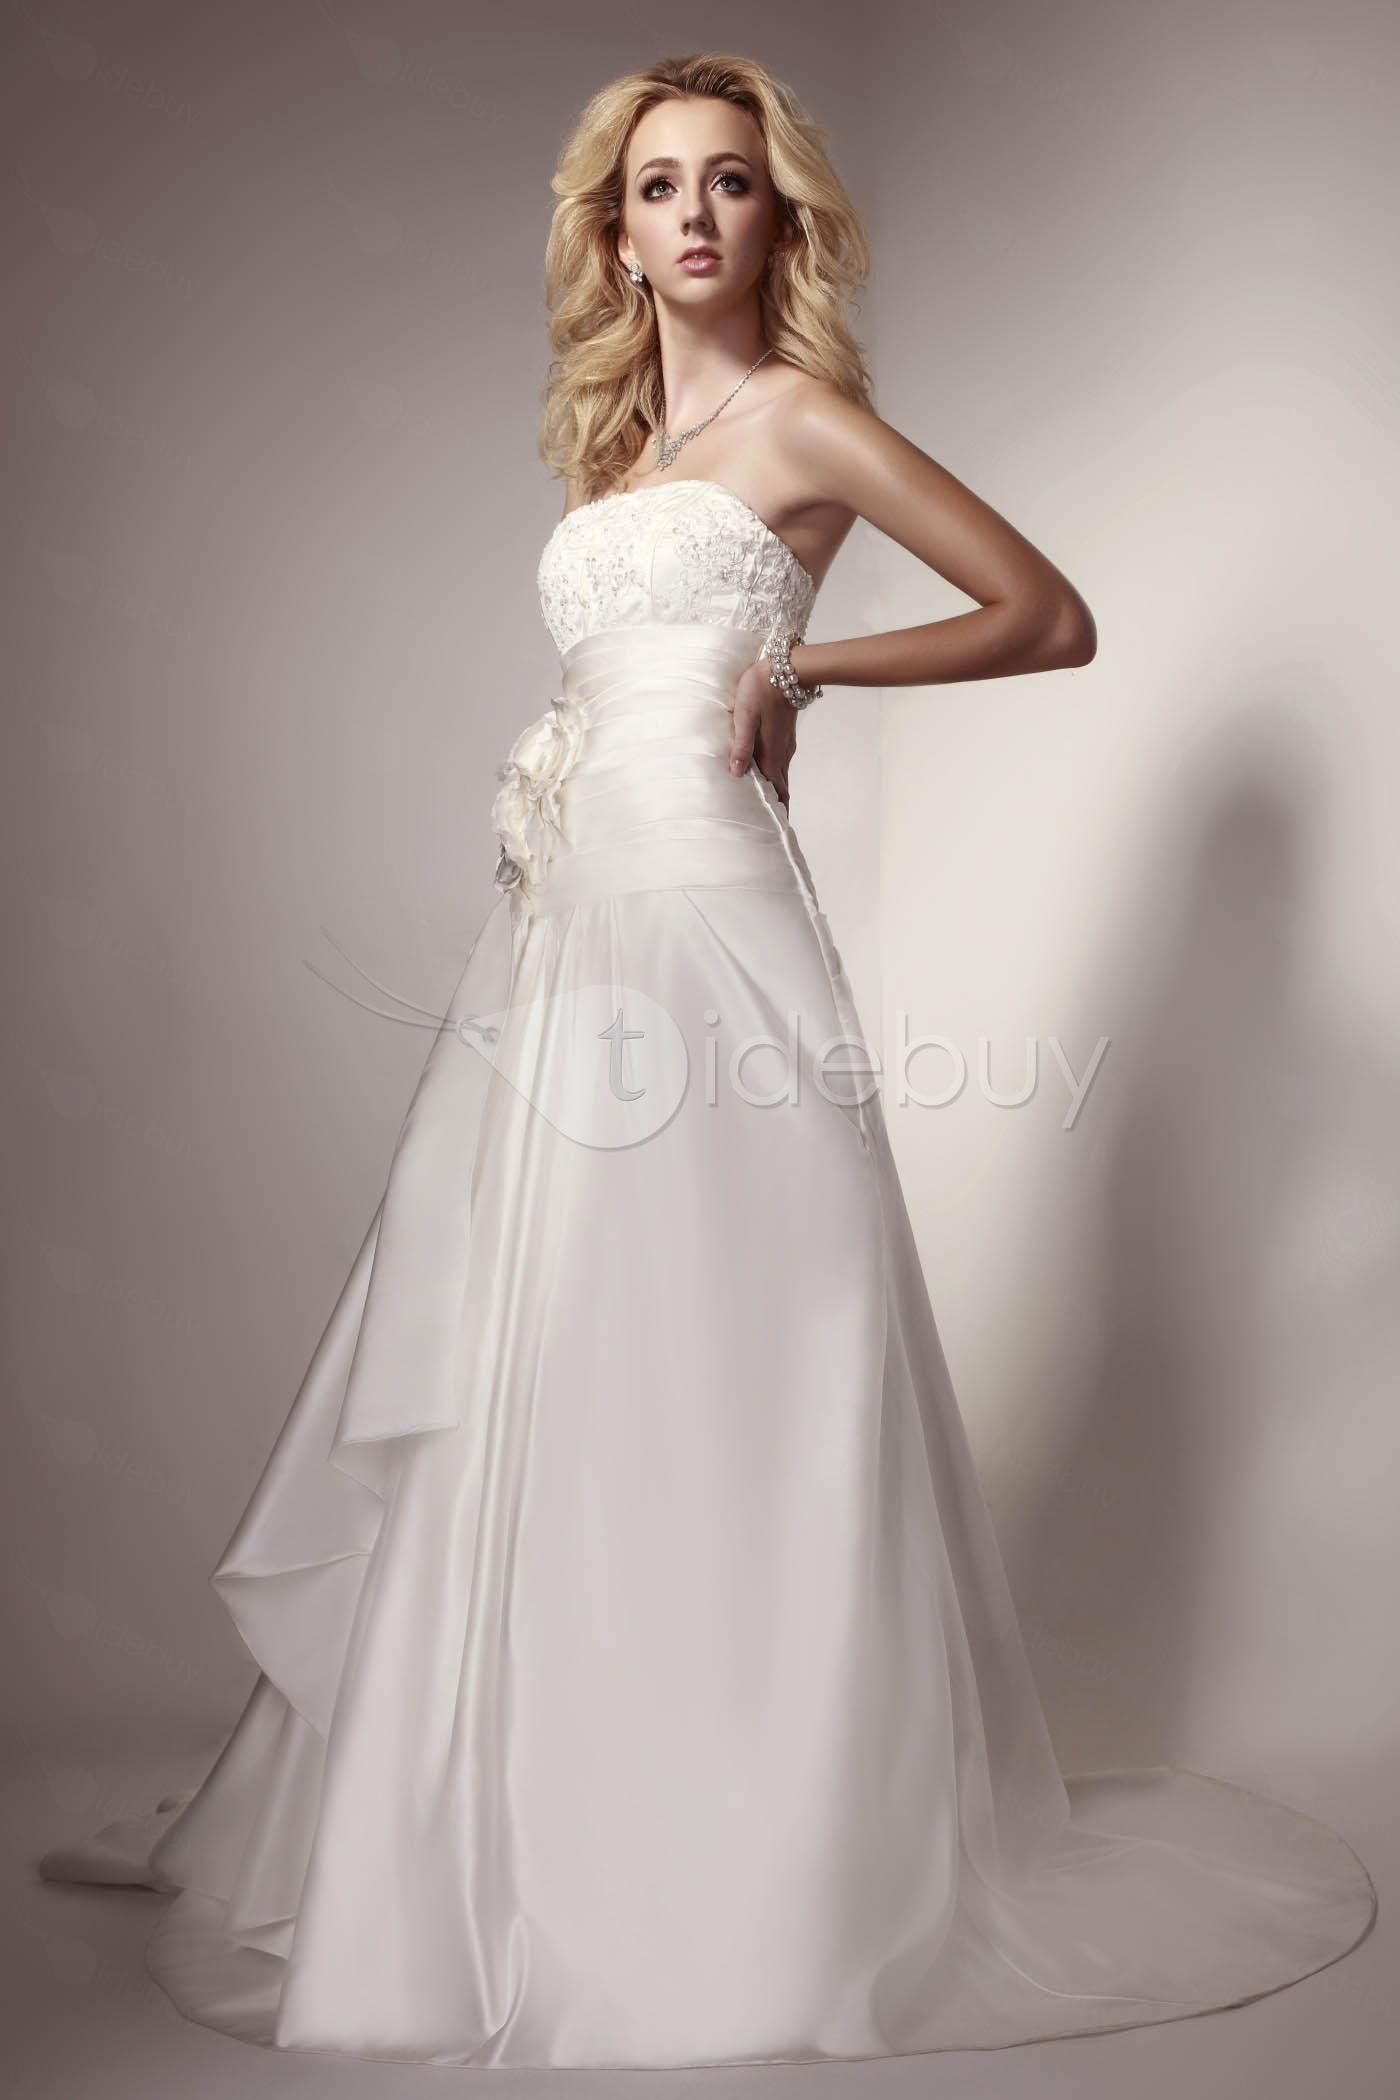 Amy's wedding dress  Sophisticated Strapless Ruched Aline Flowers Amyus Bridal Wedding